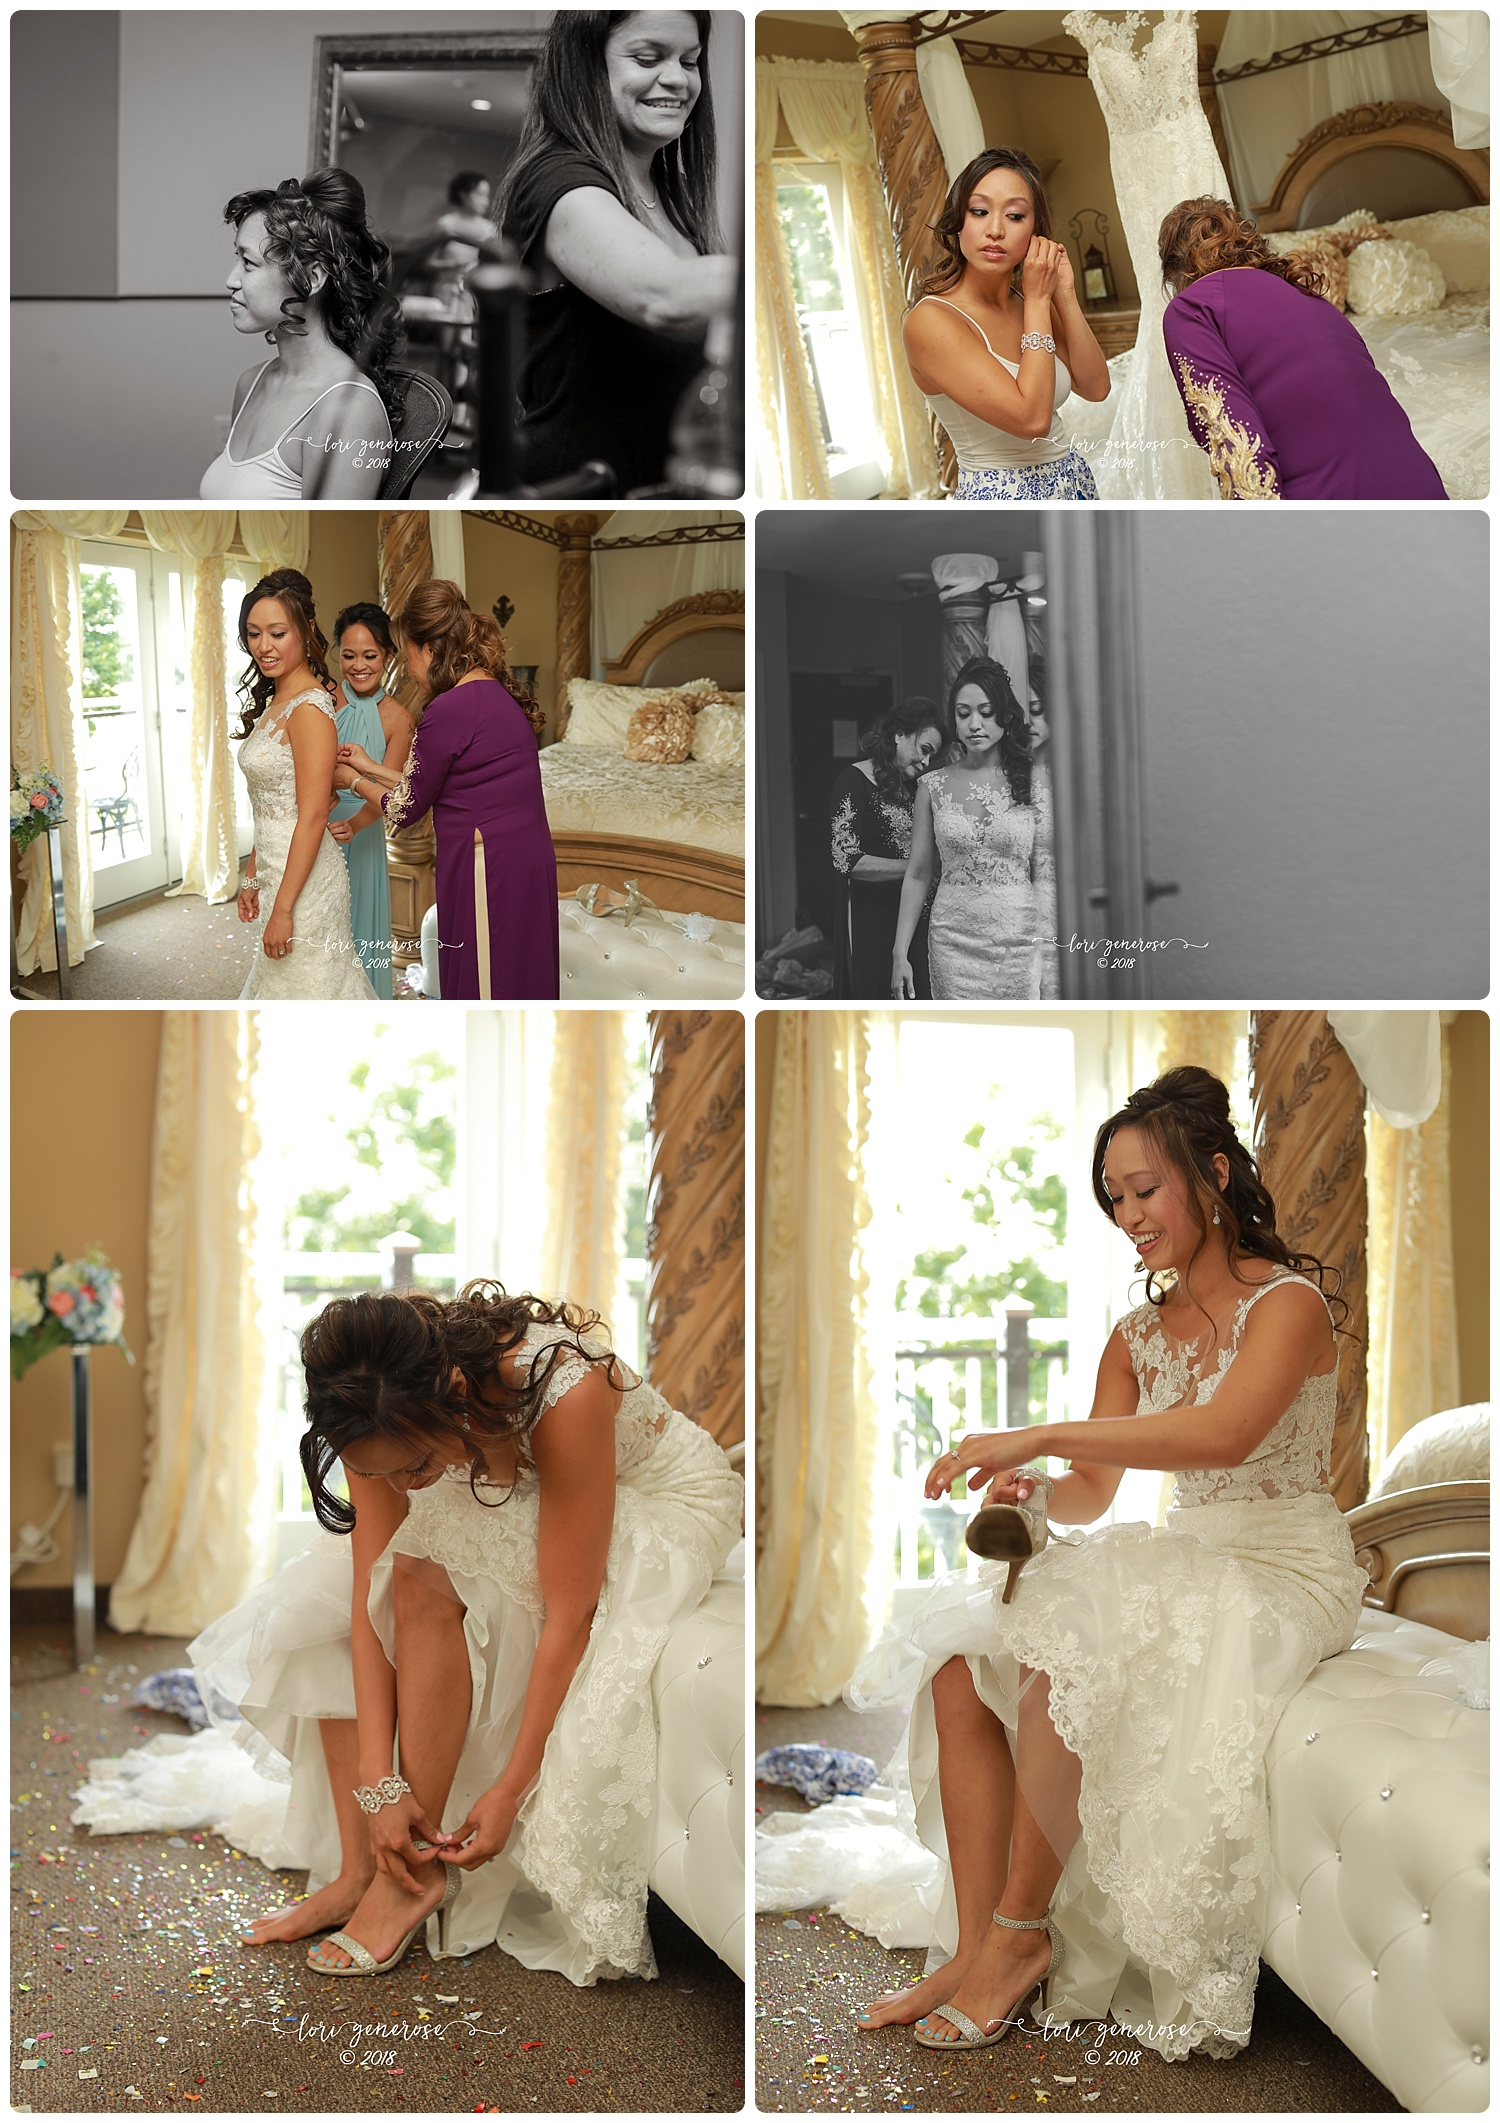 lgphotographylorigenerosewoodstonecountryclubweddingbridegettingreadyweddingdressshoes.jpg